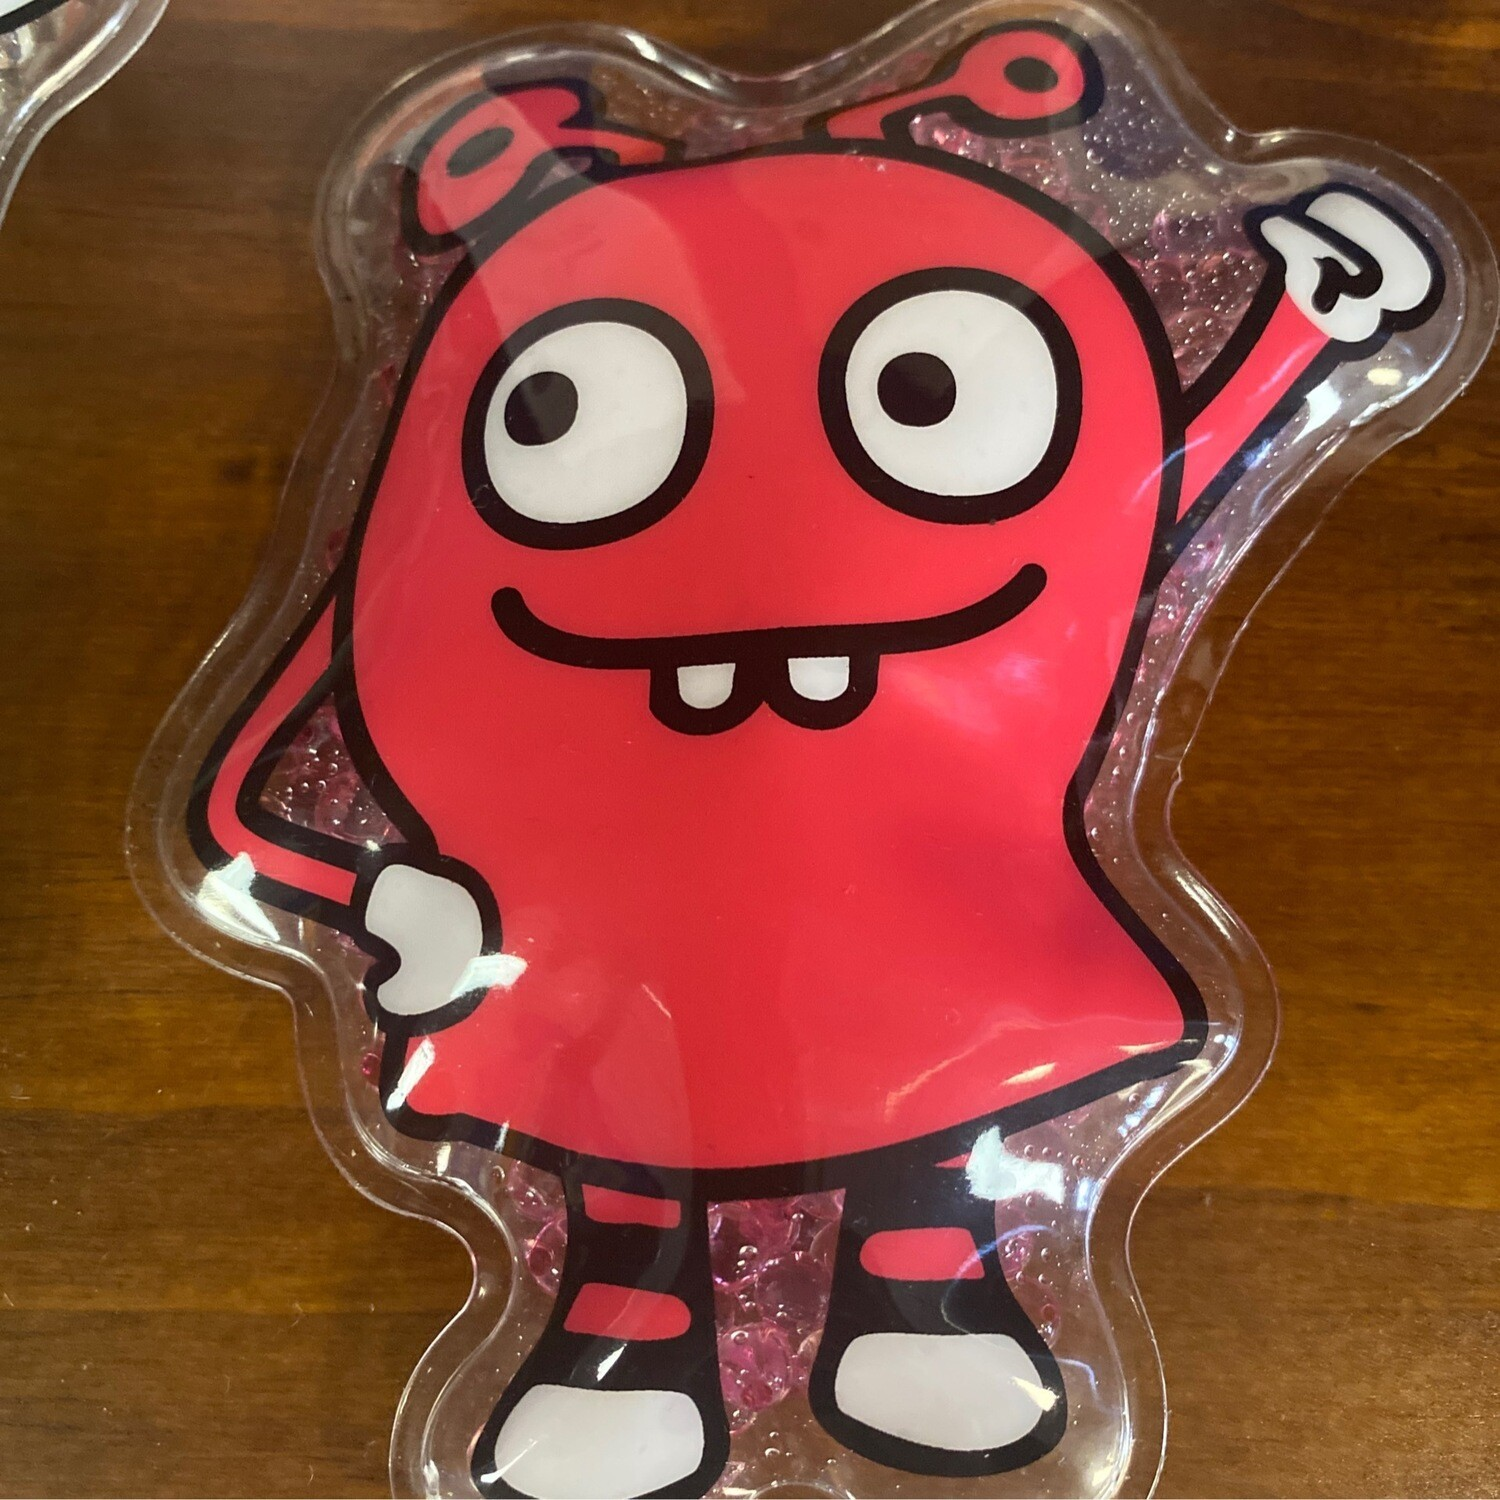 Red Monster Boo Boo Pack - Flexible Gel Cold Compress Therapy - Reusable Heat Wraps with Straps for Kids Teens & Adults